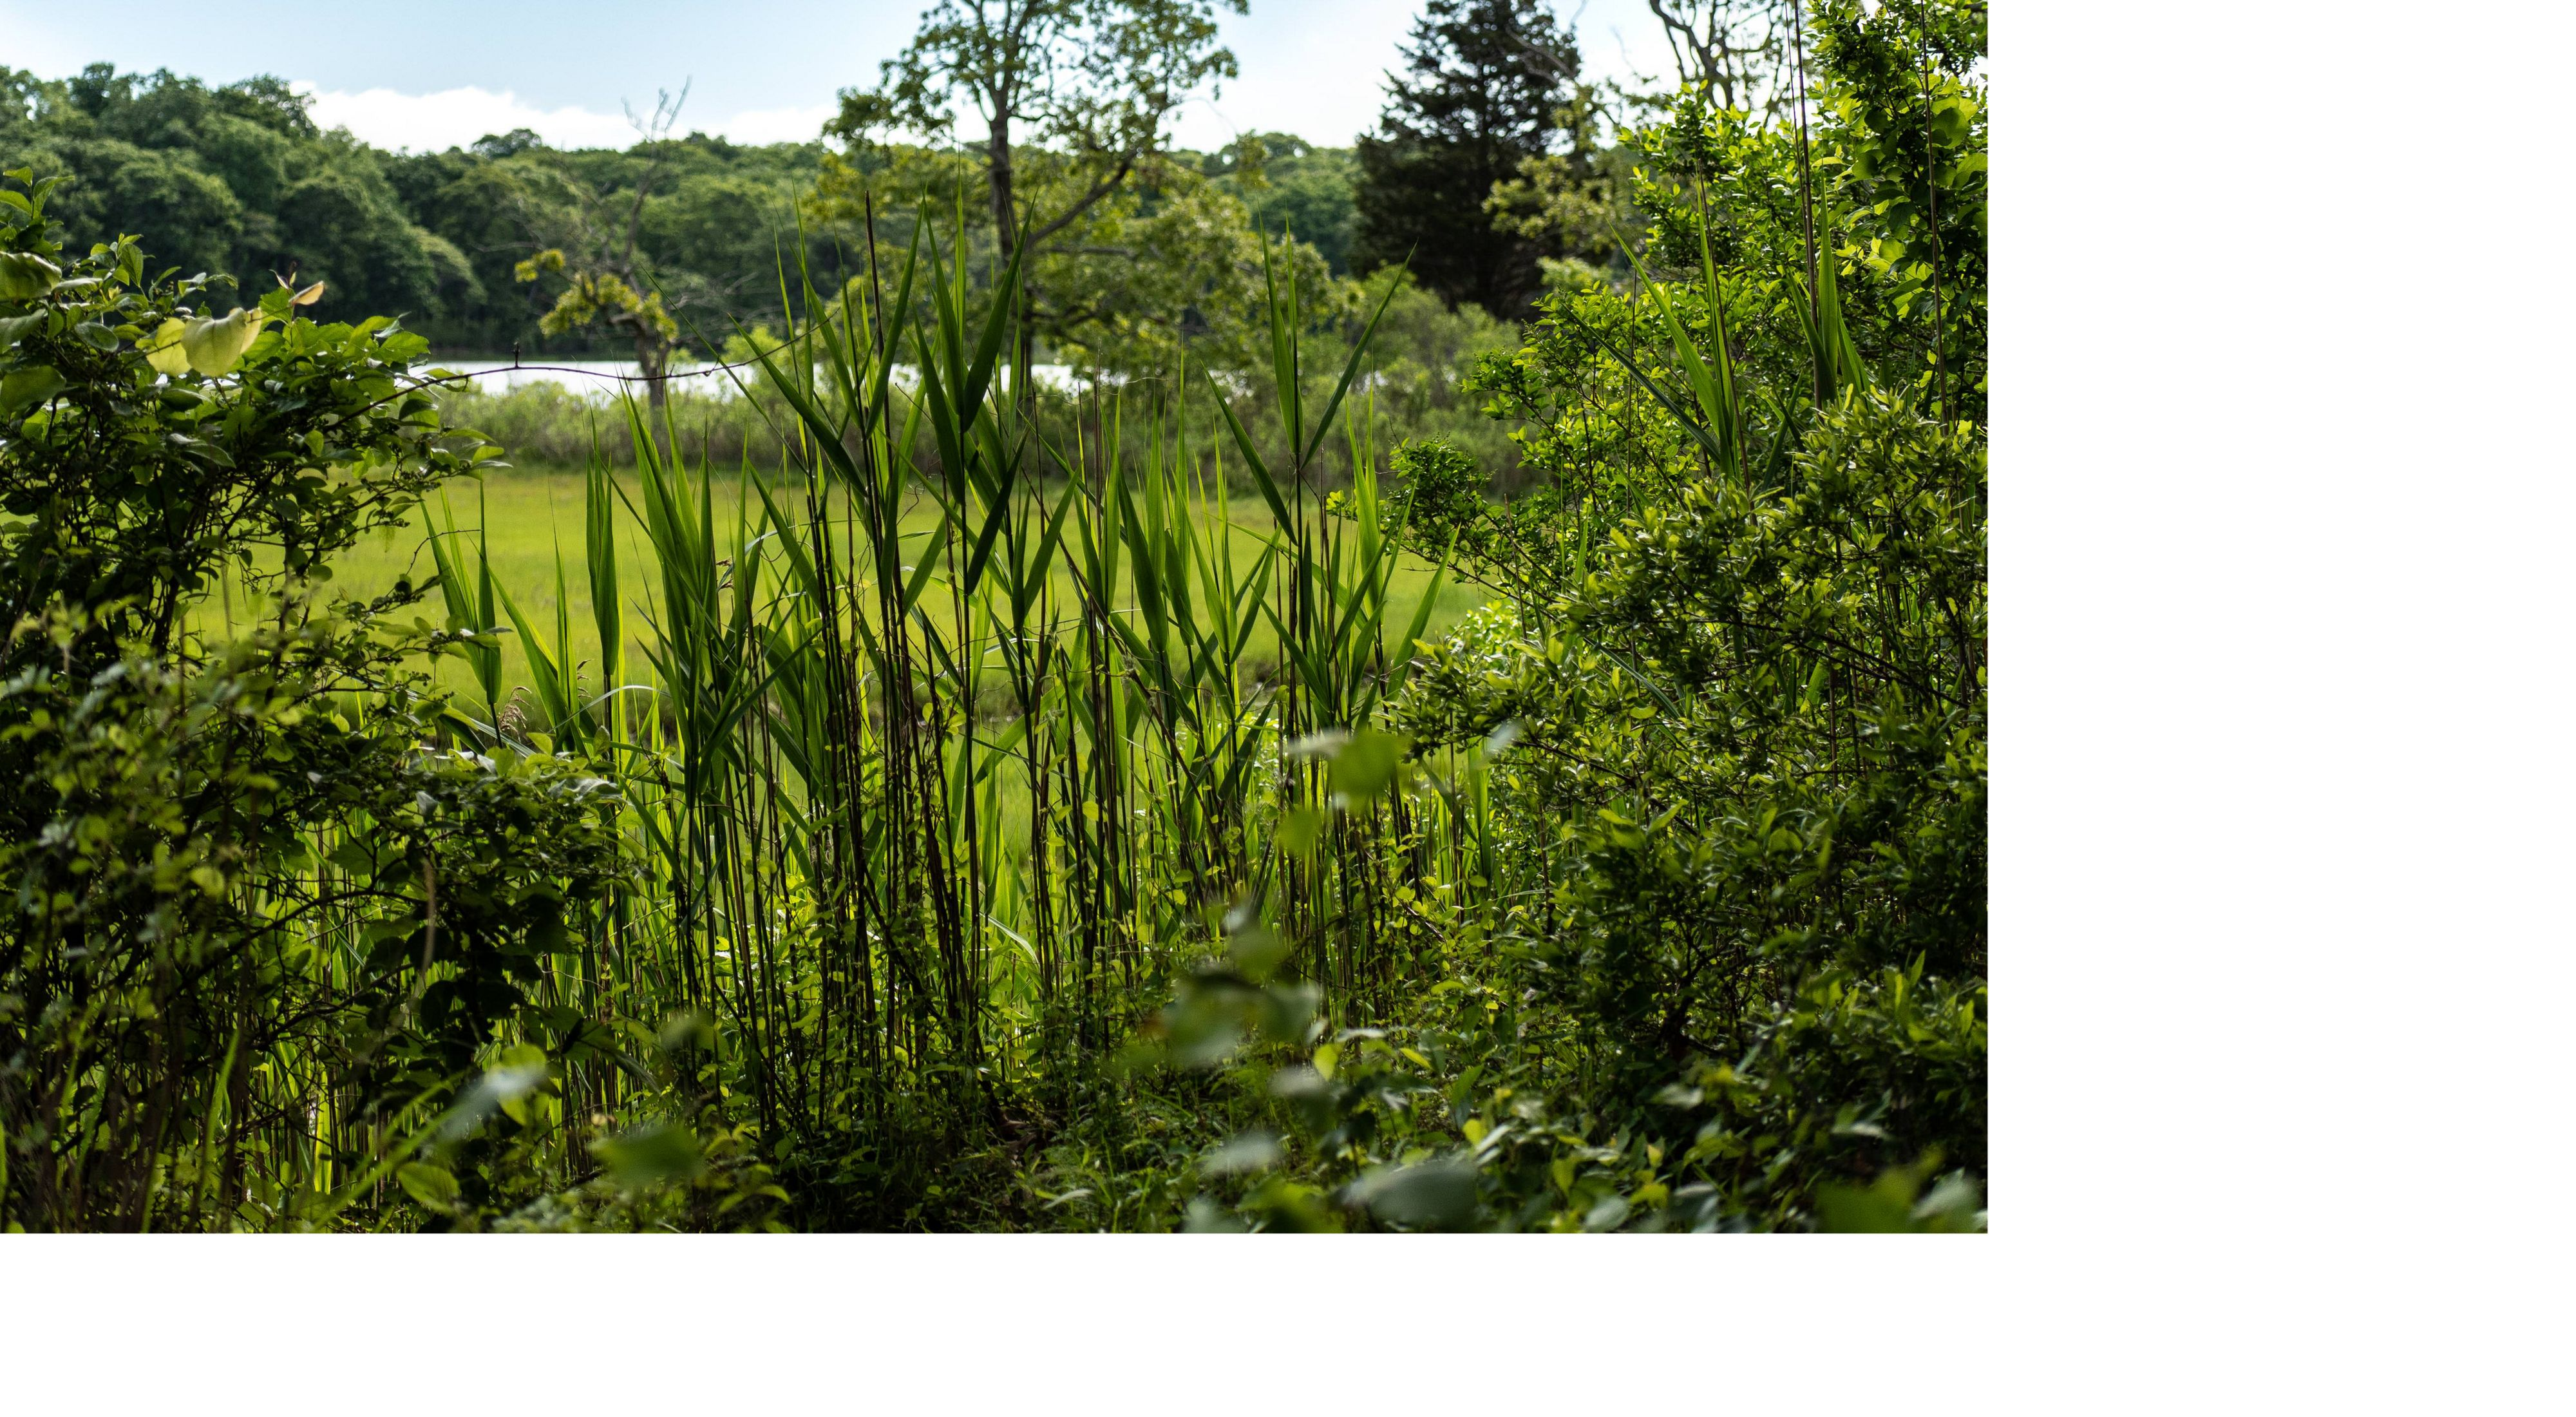 A view through green foliage and plants with a pond in the background.